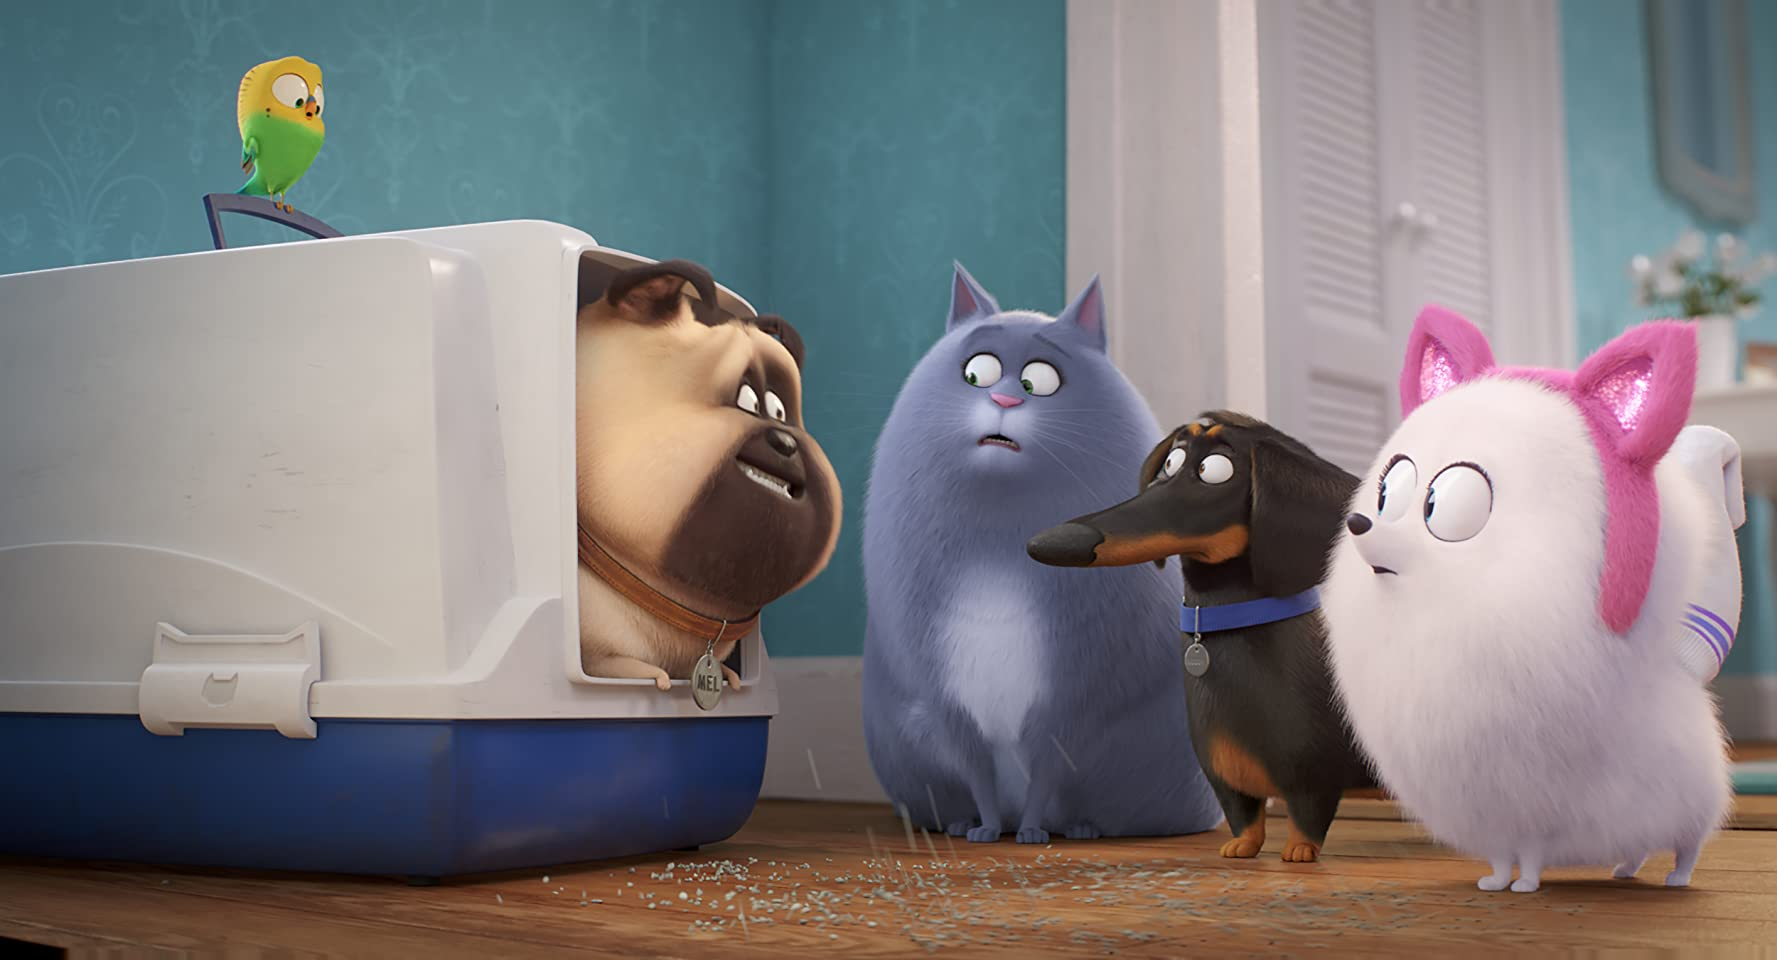 Lake Bell, Bobby Moynihan, Jenny Slate, and Hannibal Buress in The Secret Life of Pets 2 (2019)